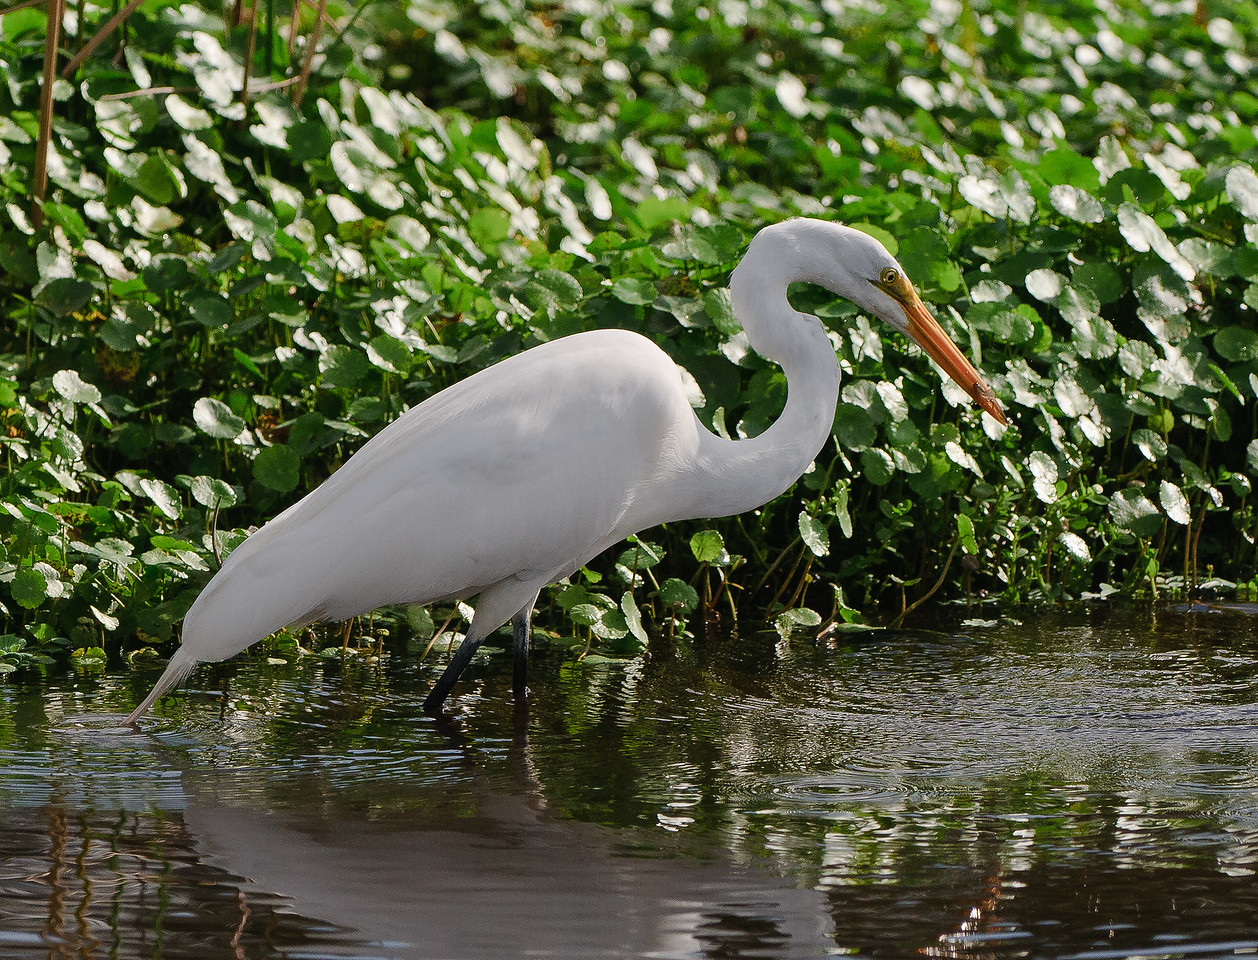 Great White Egret with a tiny fish.